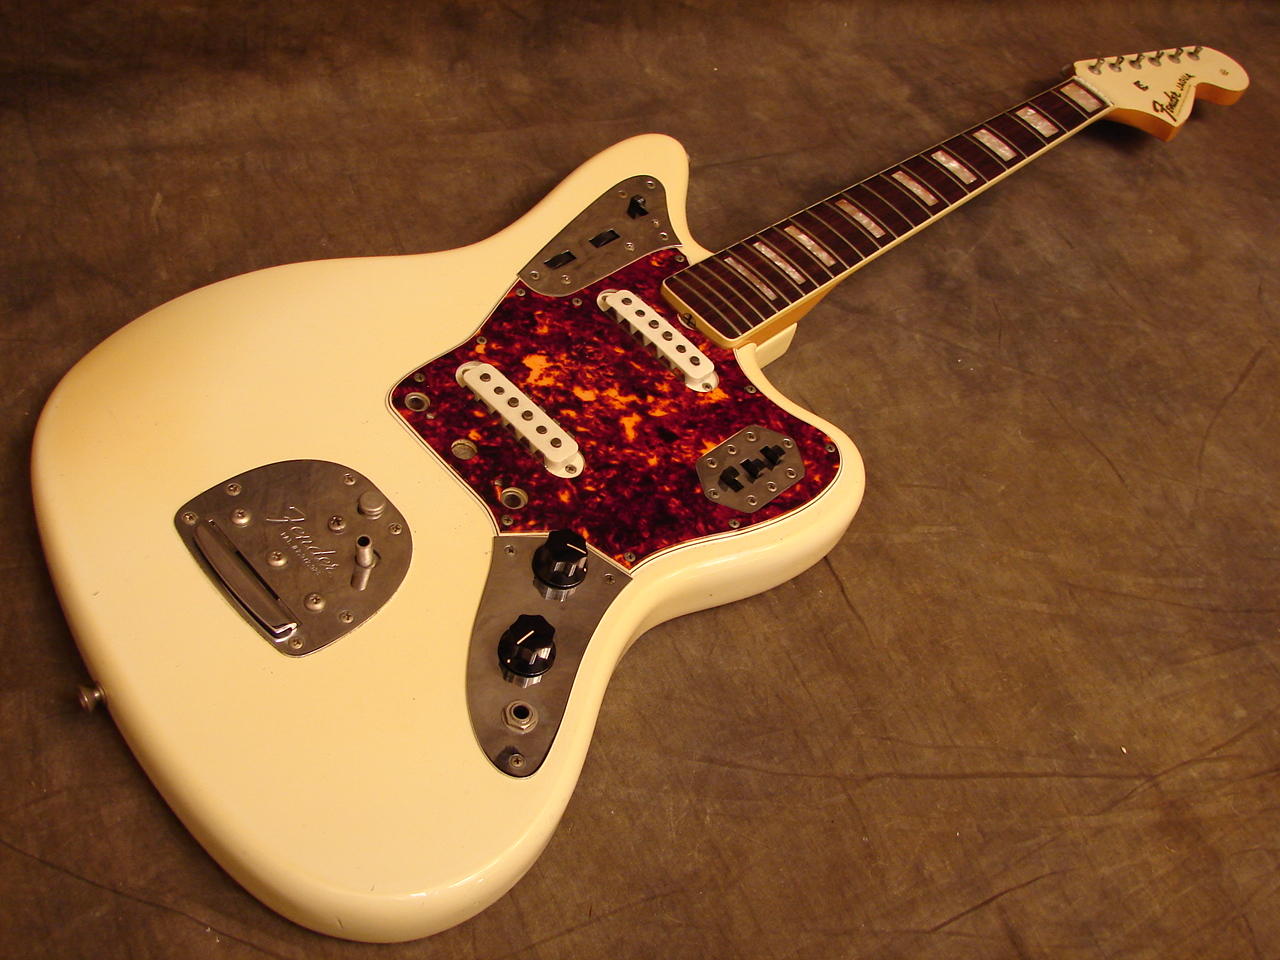 fender jaguar wallpaper - photo #15